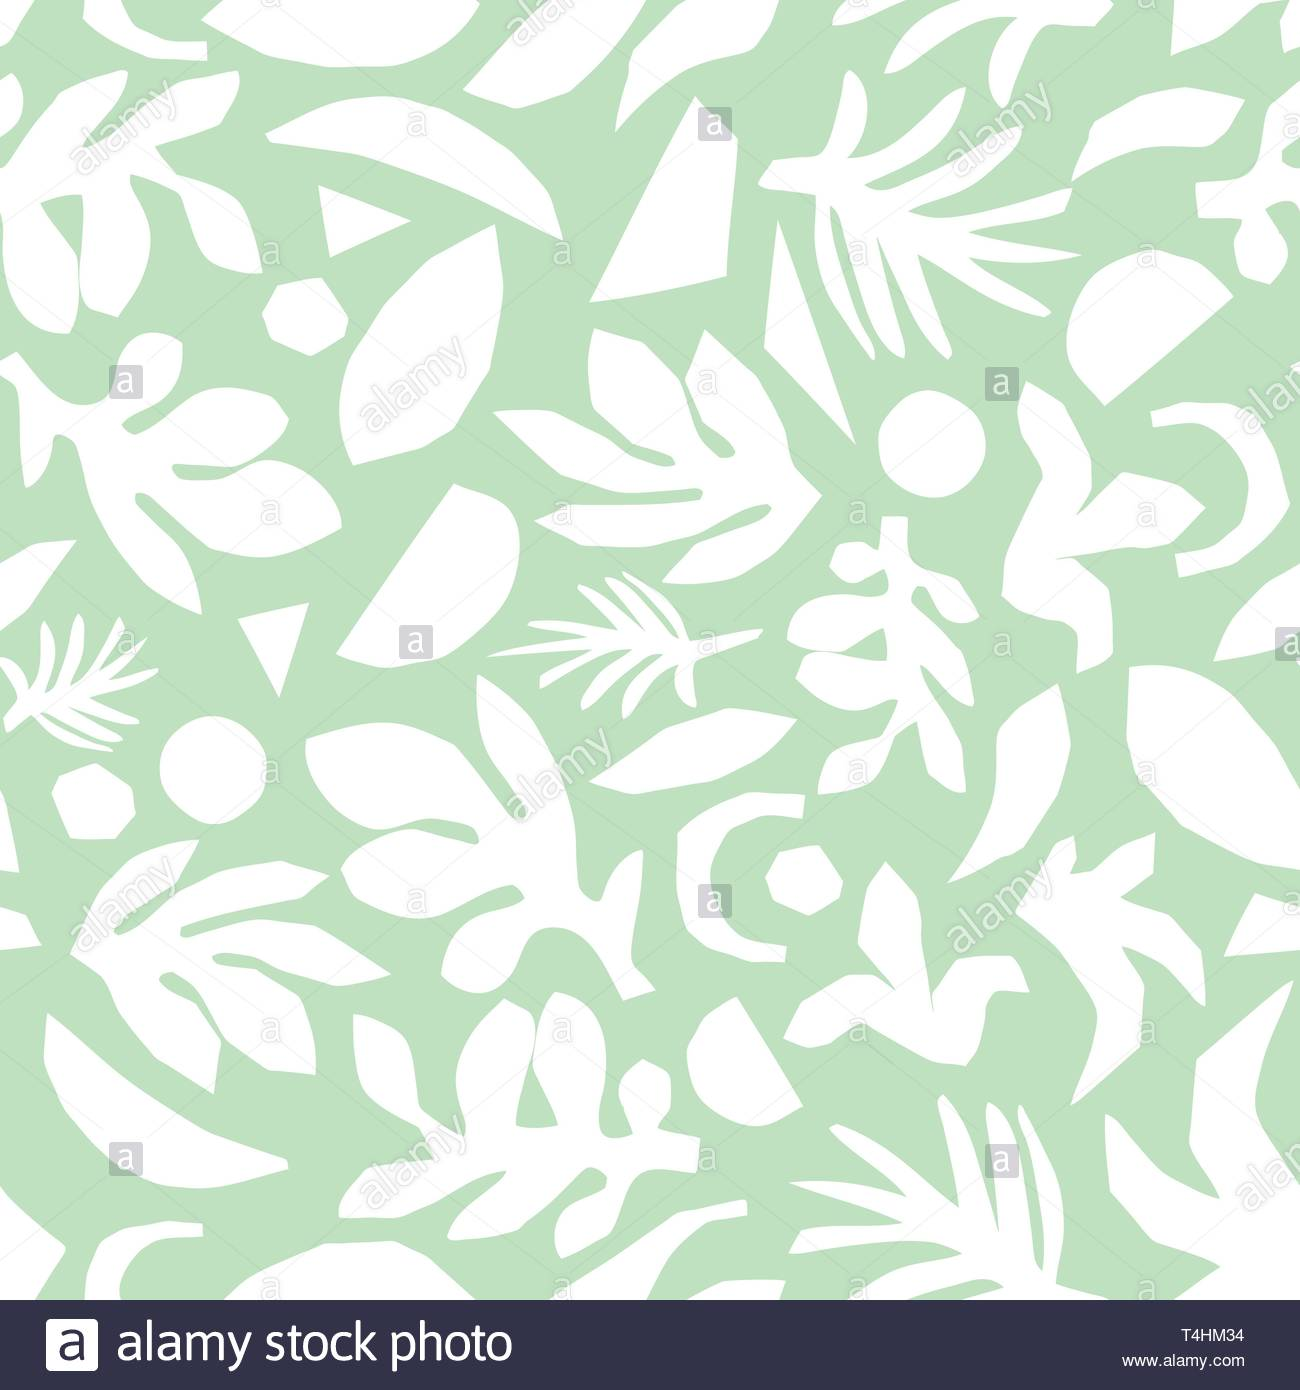 Abstract Mint Green And White Floral Background Vector Seamless